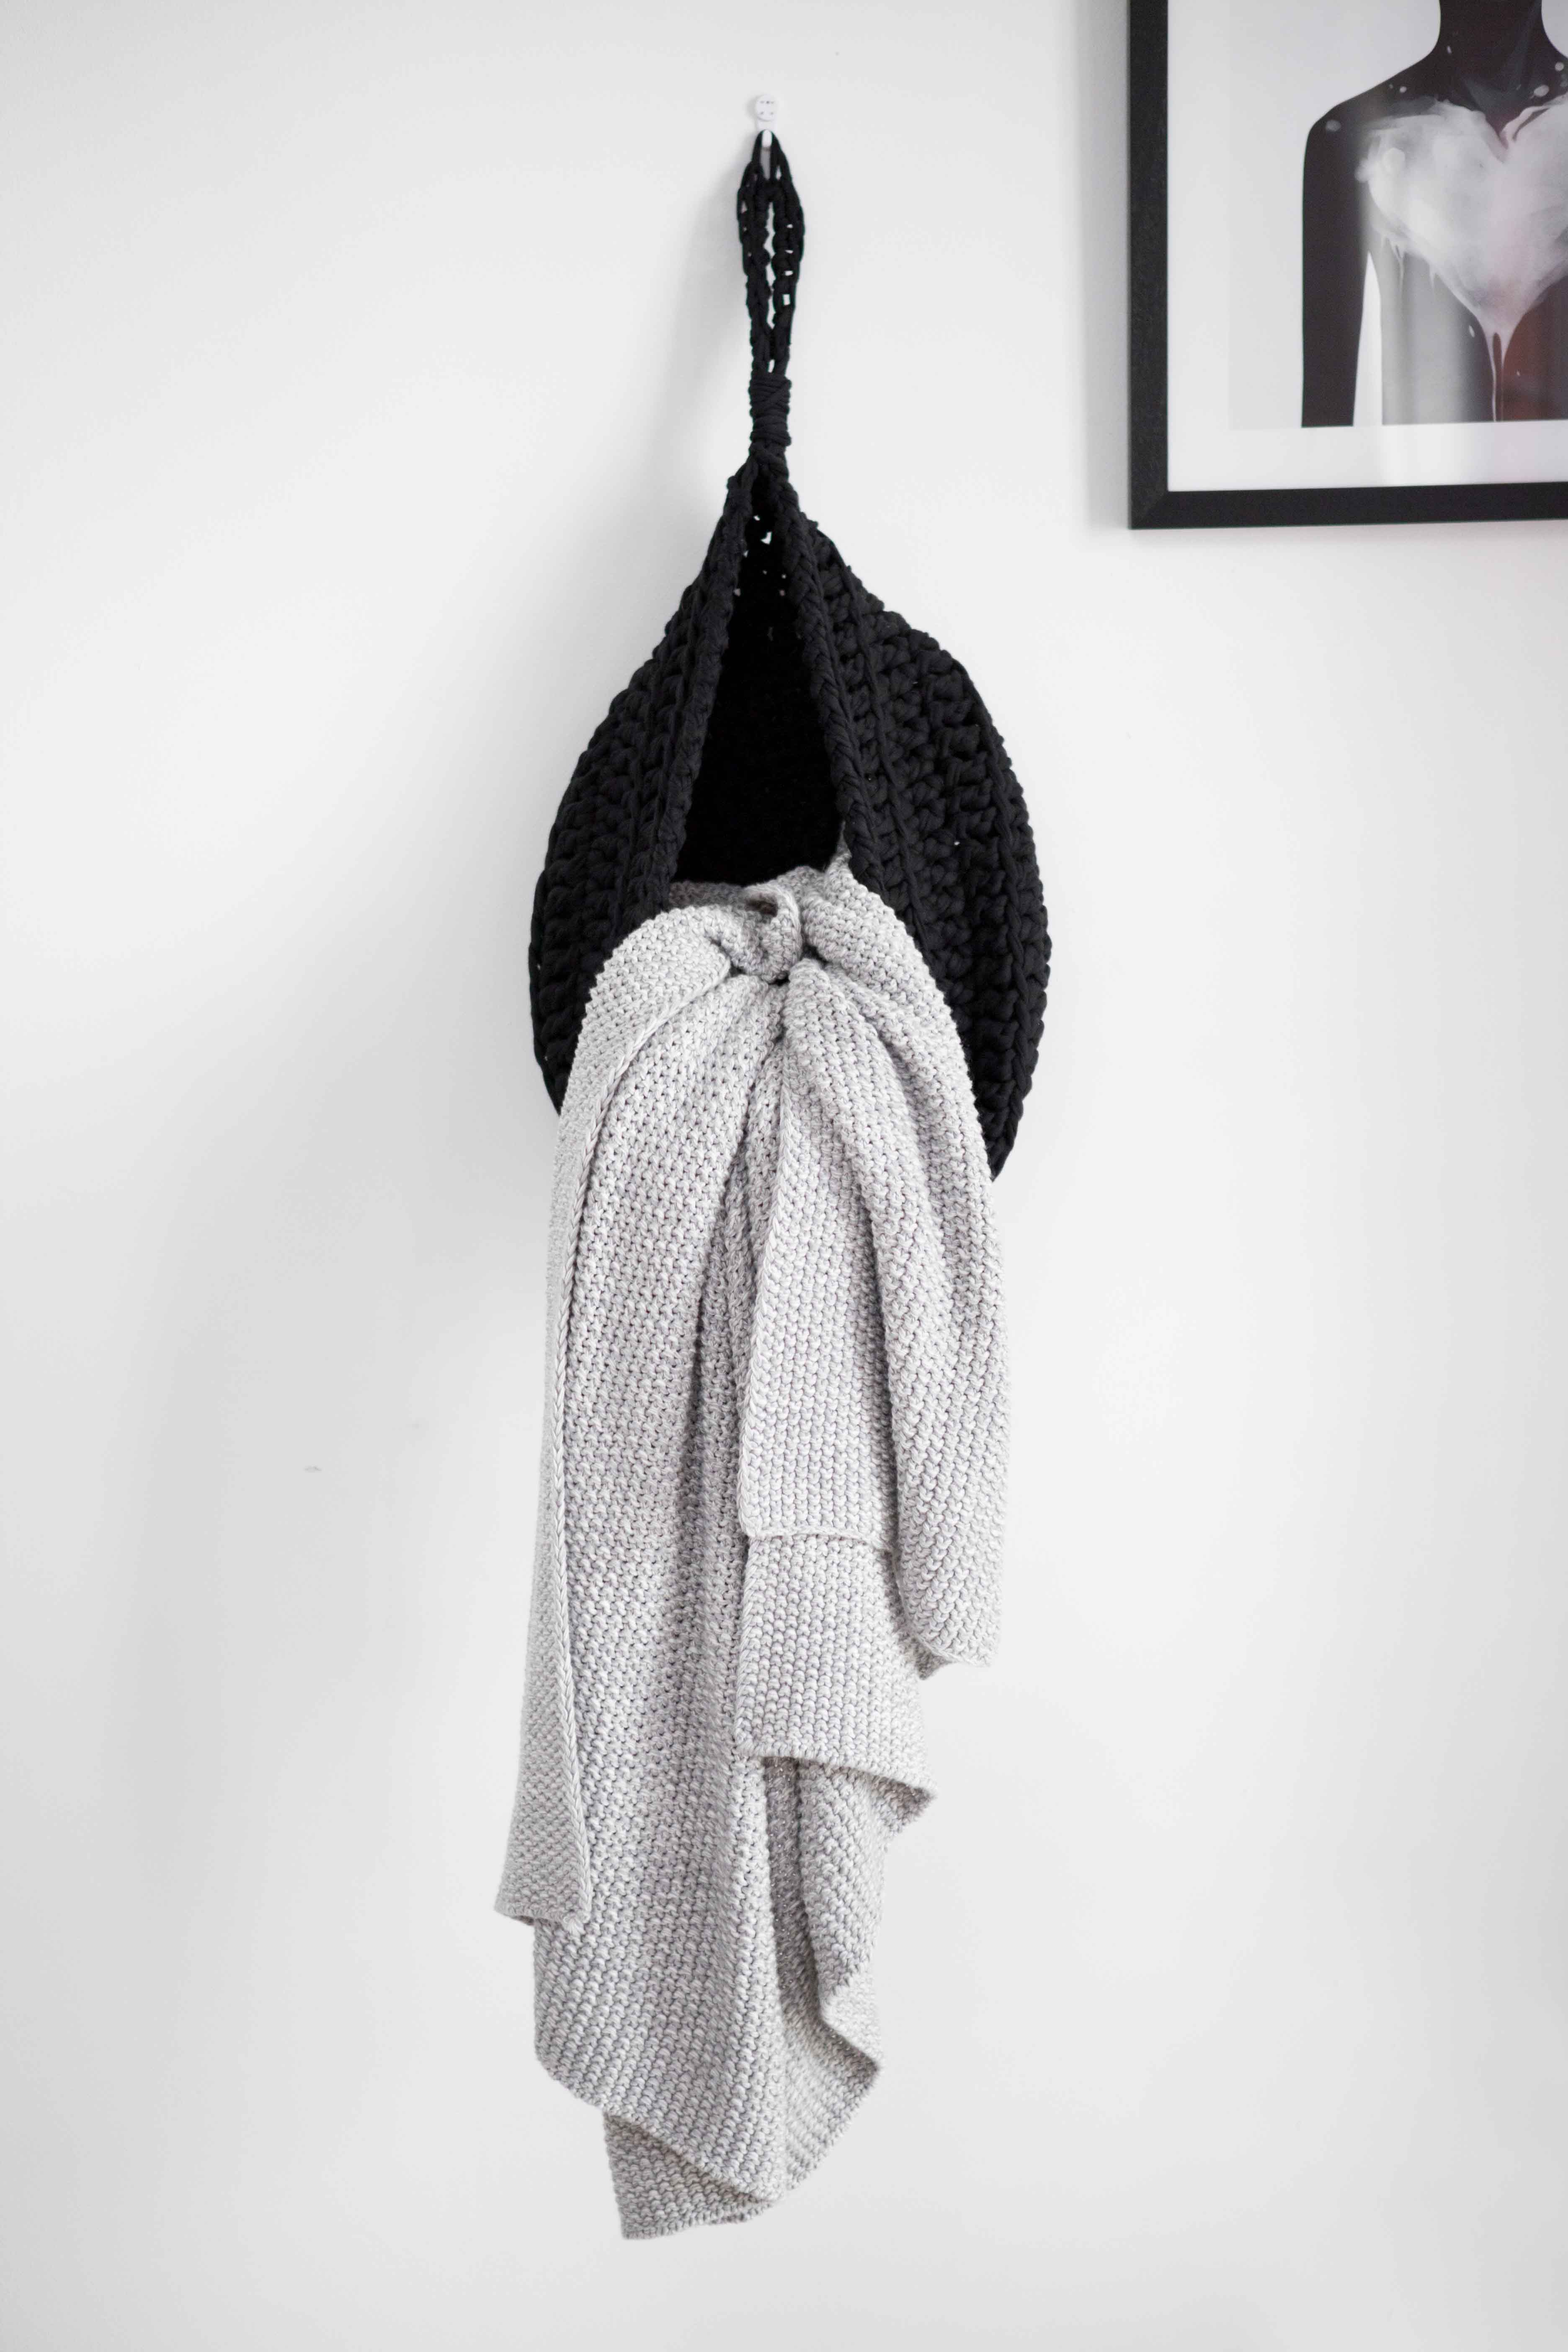 decor scandi hangers picture basket product small crochet home decorative hanging